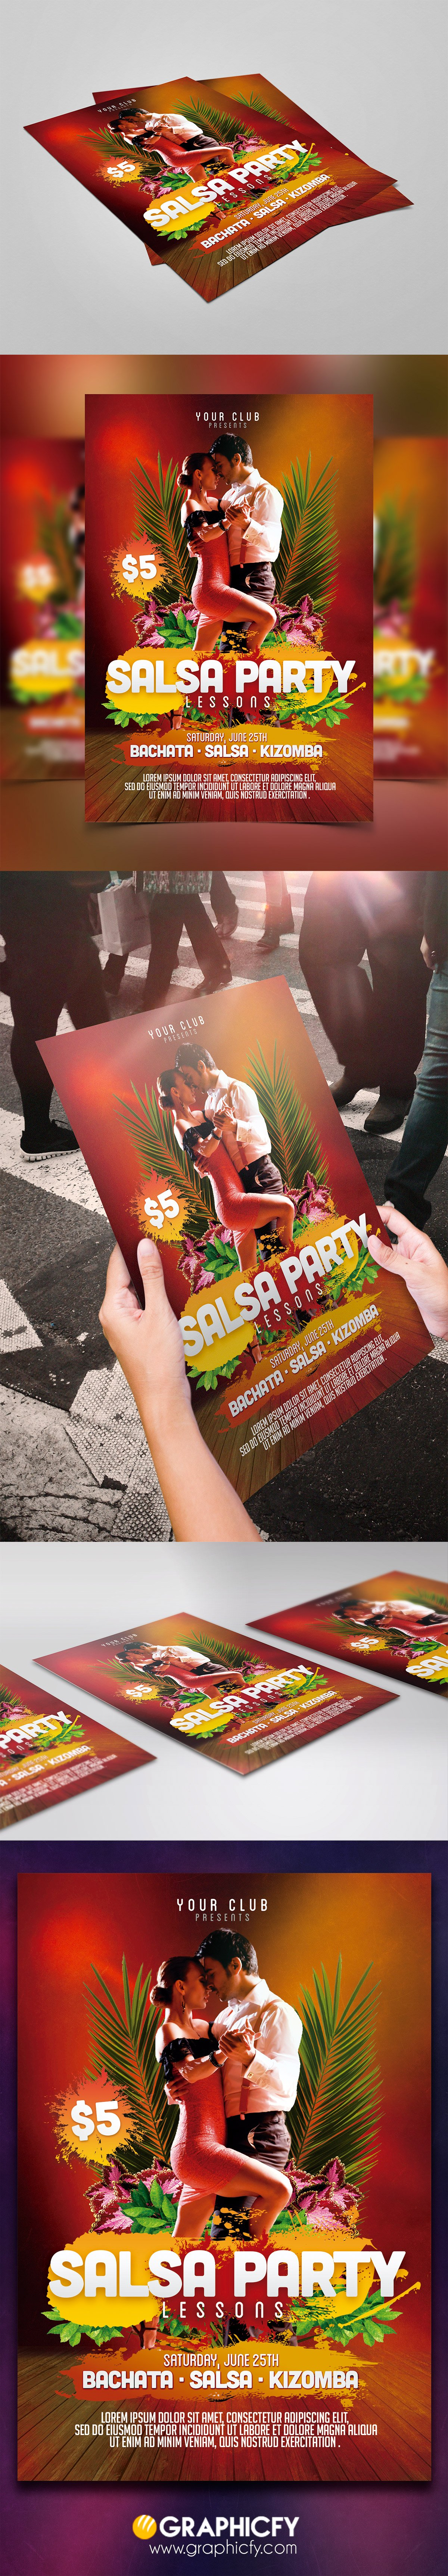 salsa-flyer-template-psd